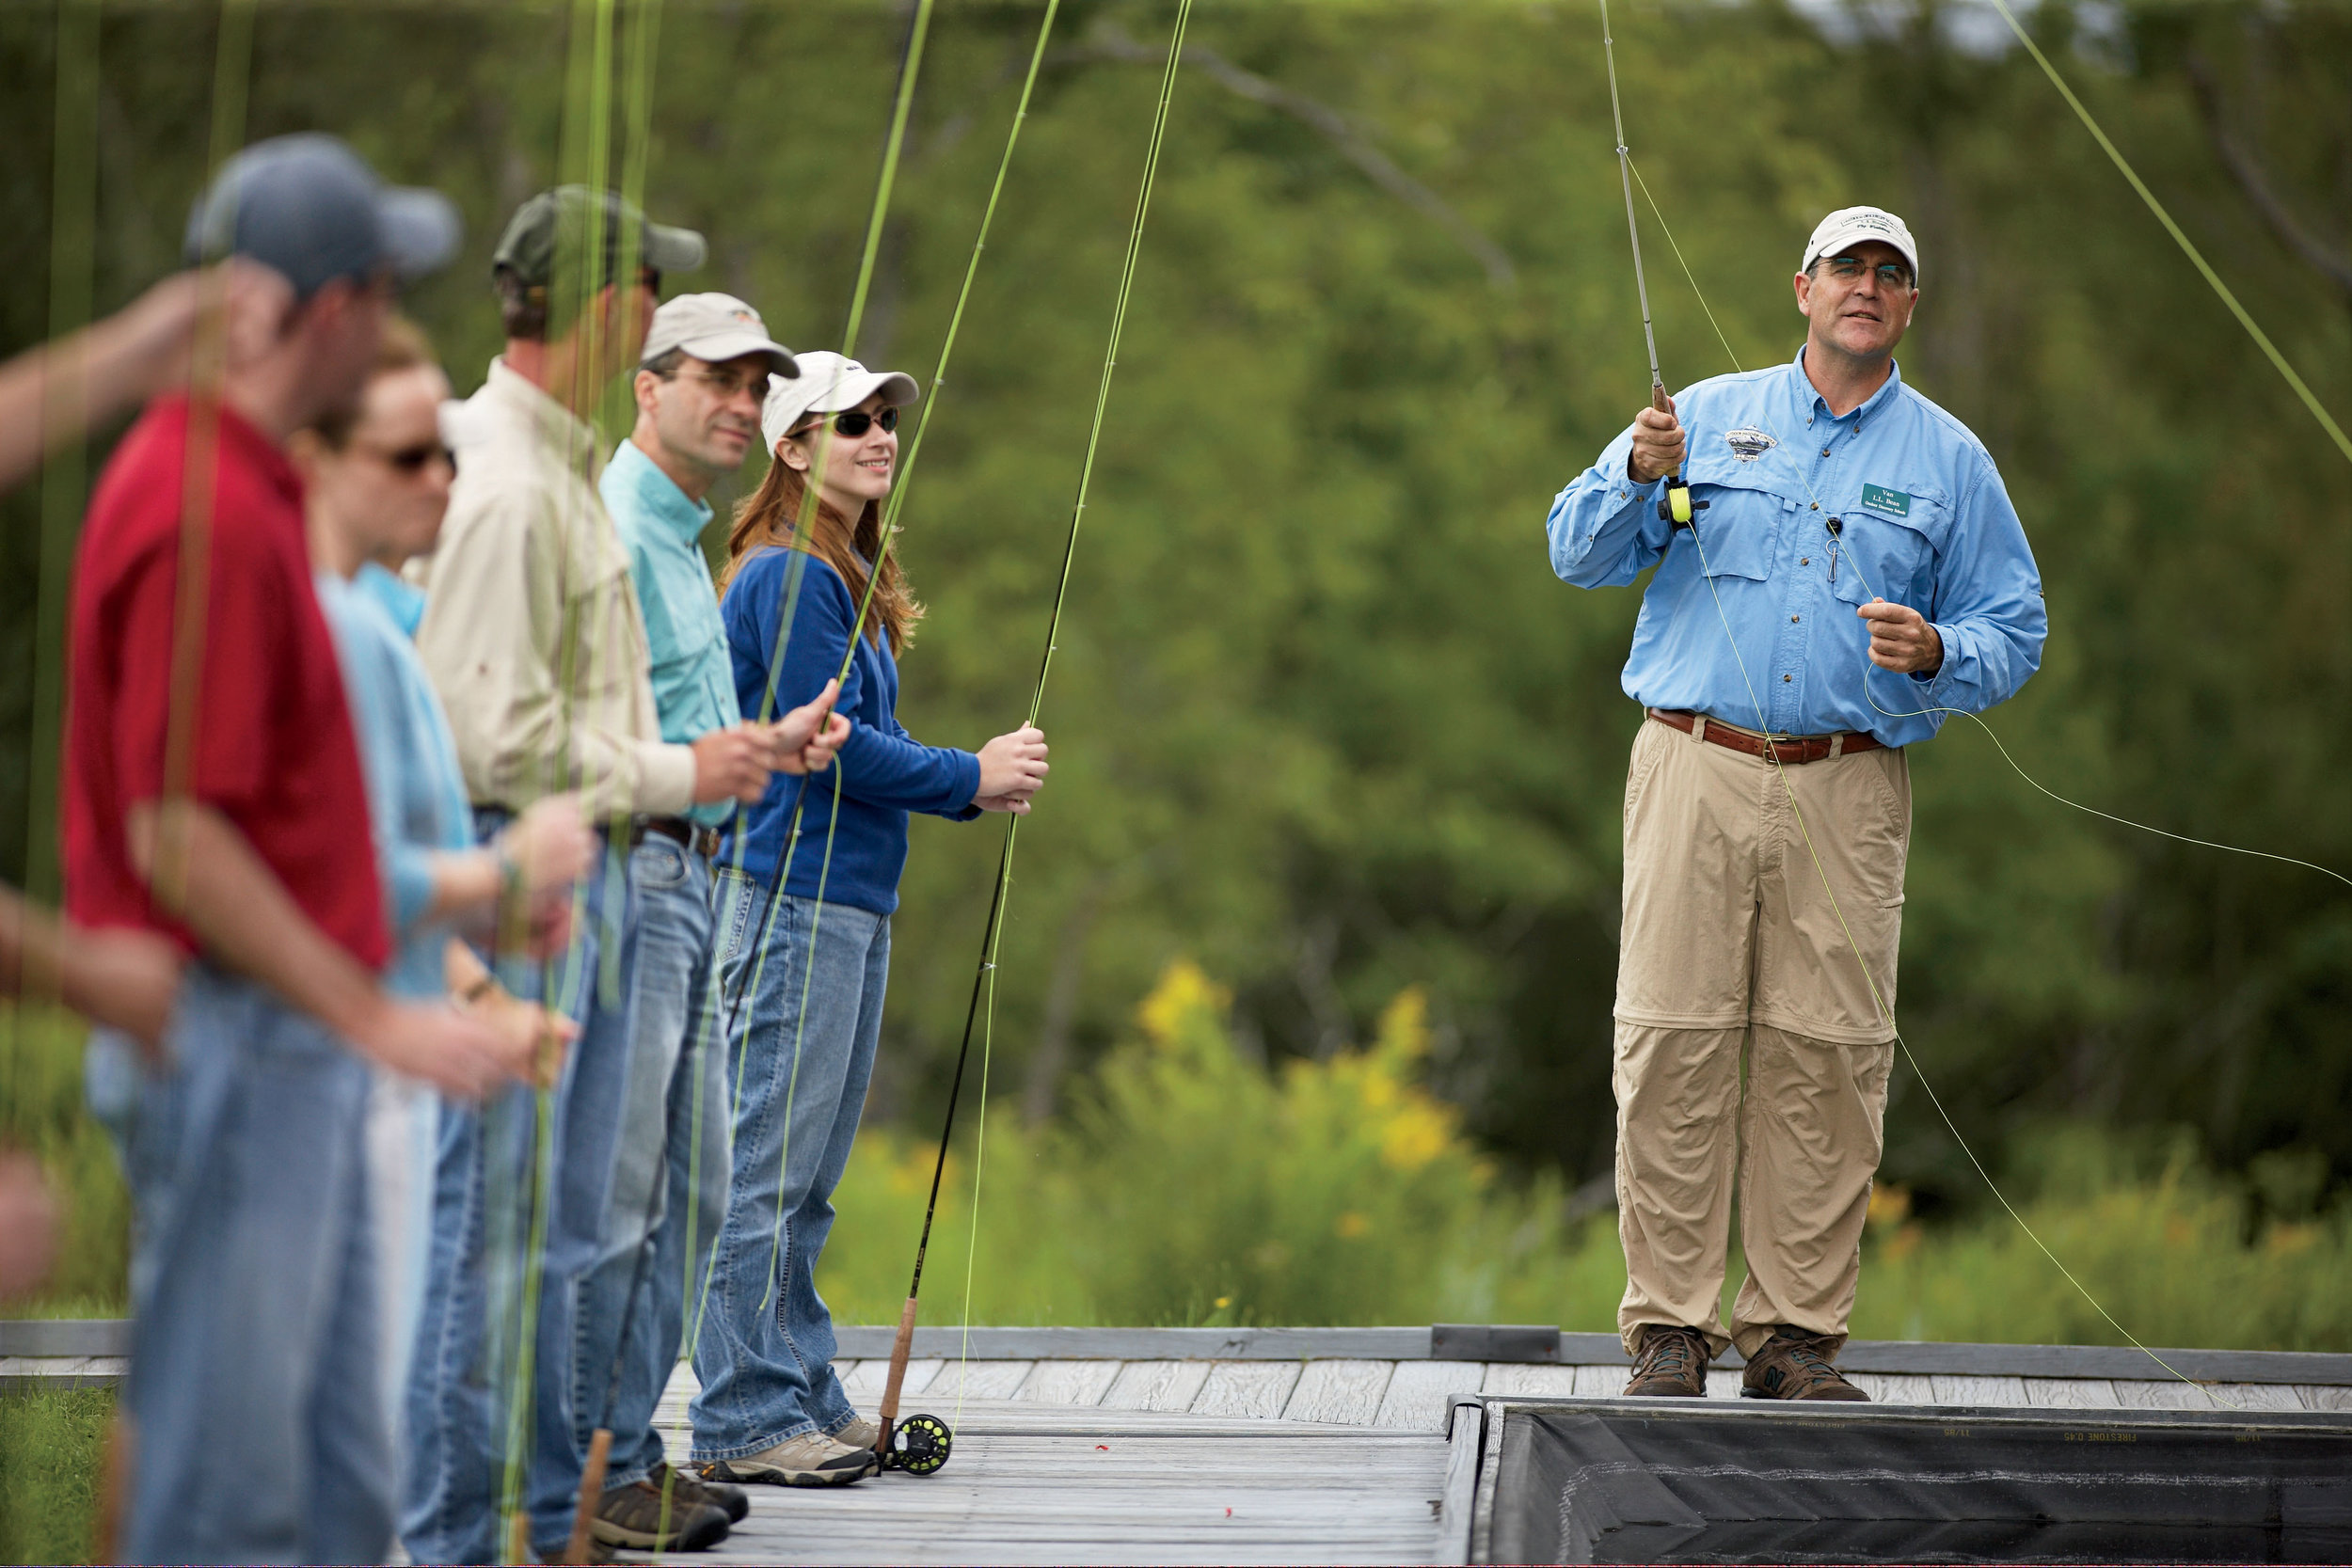 Students learning the fundamentals of fly casting